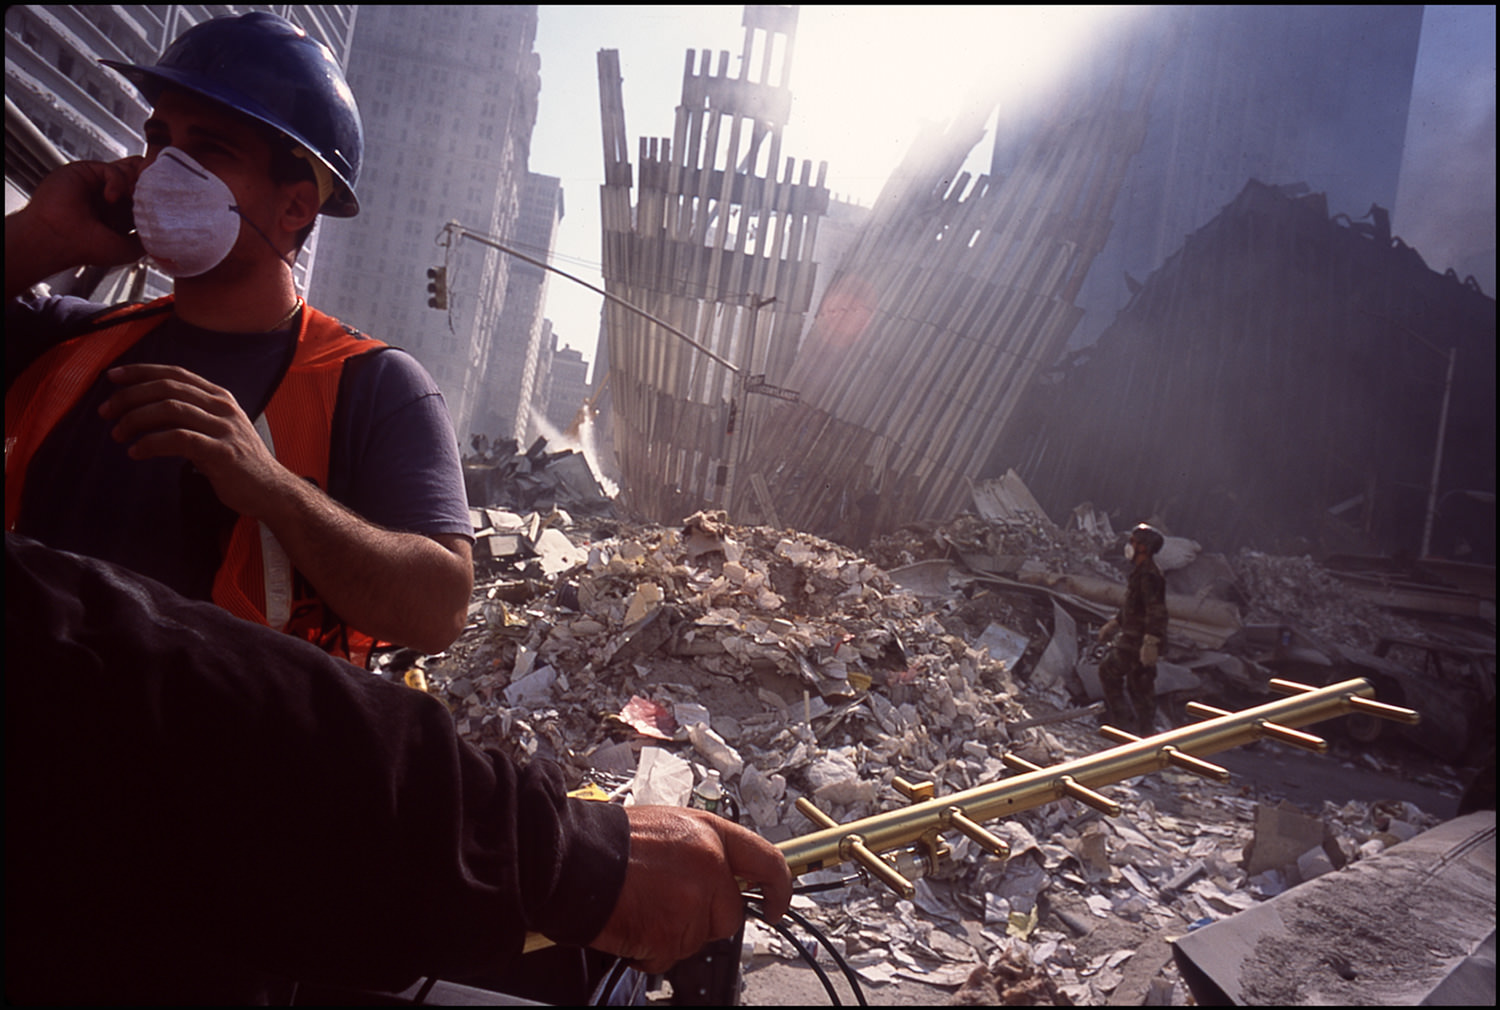 One week later, the towers were down and rescue workers tried in vain to track survivors through cell phone transmissions.